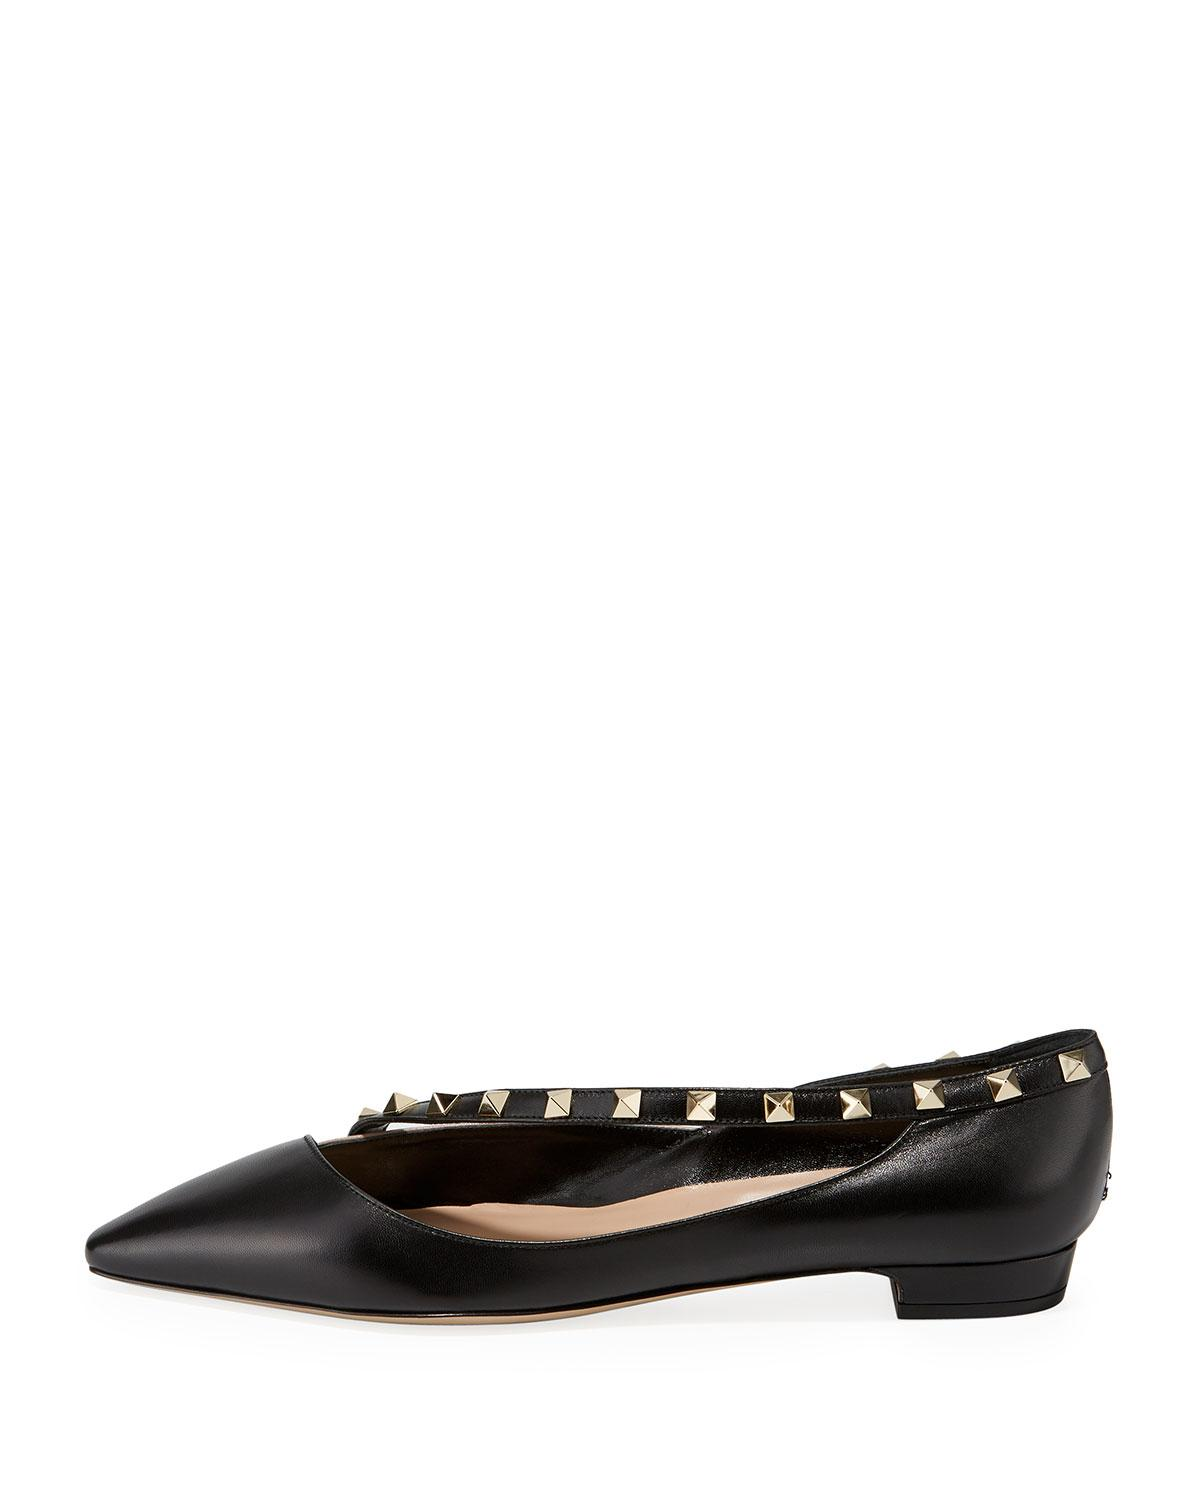 2dca8c90501a Lyst - Valentino Rockstud Cross-strap Leather Flats in Black